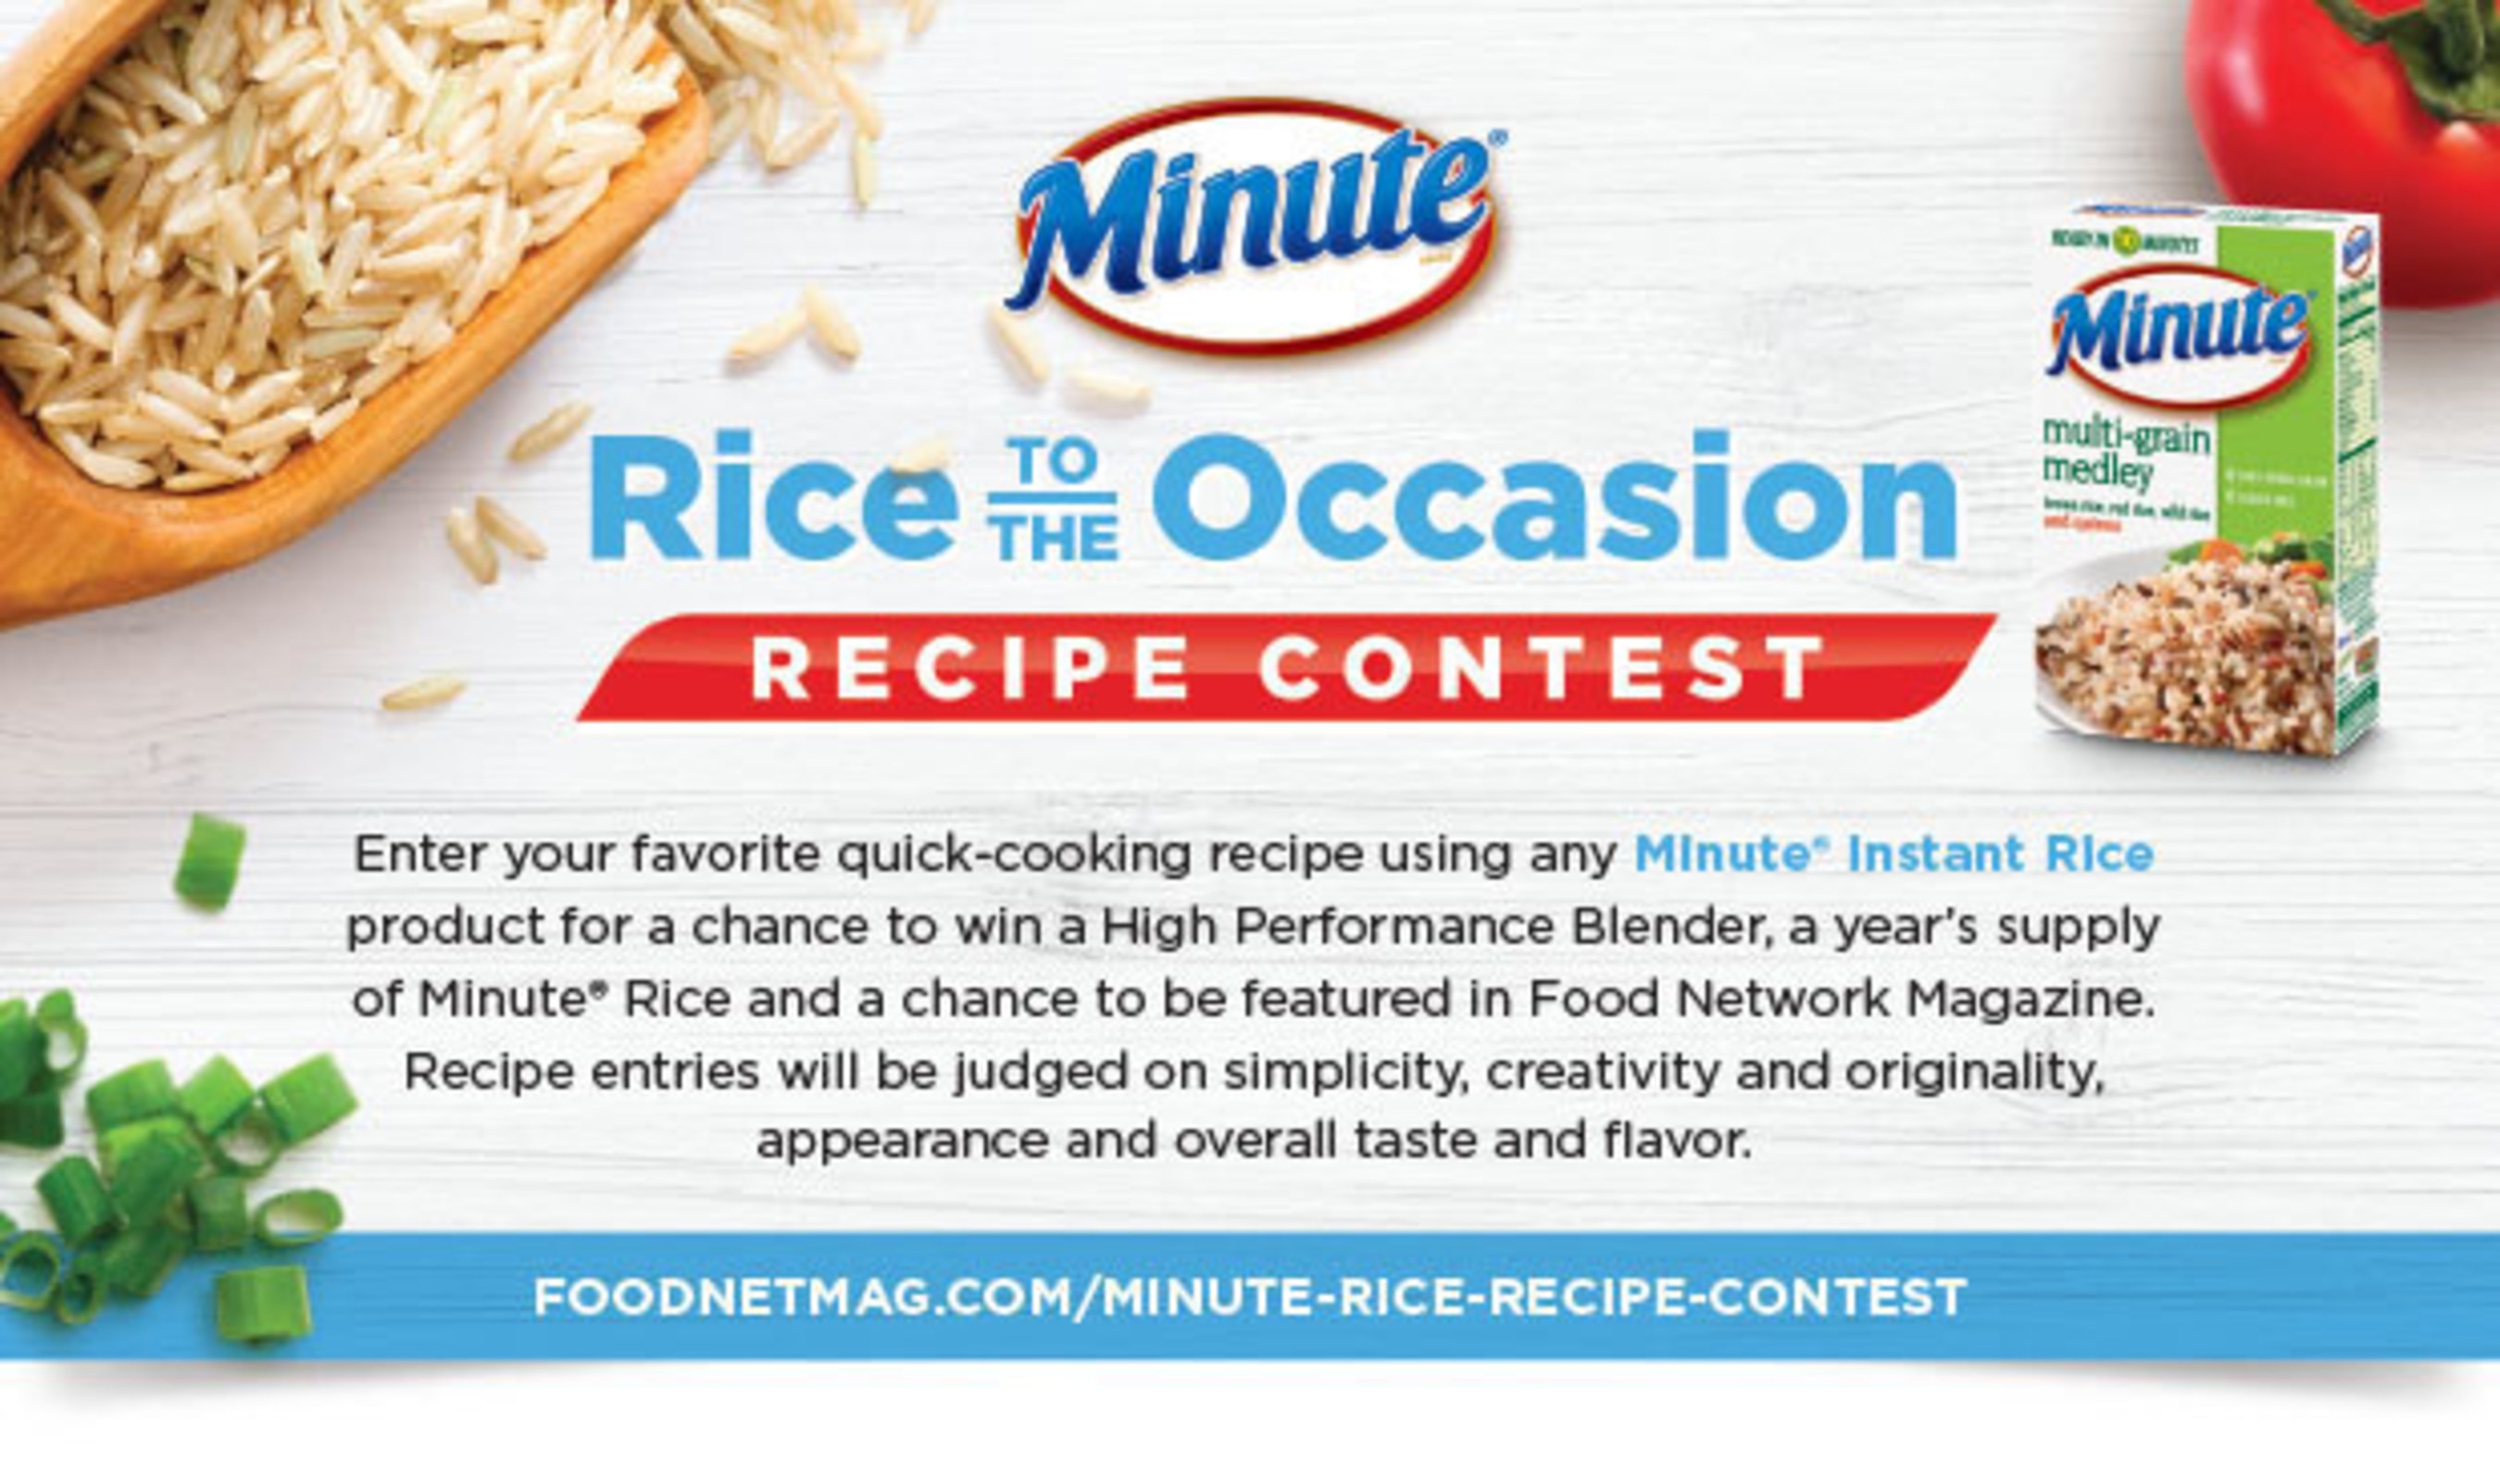 """Through September 5, Minute(R) Rice is hosting the """"Rice to the Occasion"""" Recipe Contest. The contest, as seen in the August issue of Food Network Magazine, invites homecooks to enter their favorite quick-cooking recipe using any Minute Instant Rice product for a chance to win a High Performance Blender, a year's supply of Minute Rice, and a chance to be featured in Food Network Magazine. Entrants can submit recipes at http://www.foodnetmag.com/minute-rice-recipe-contest."""